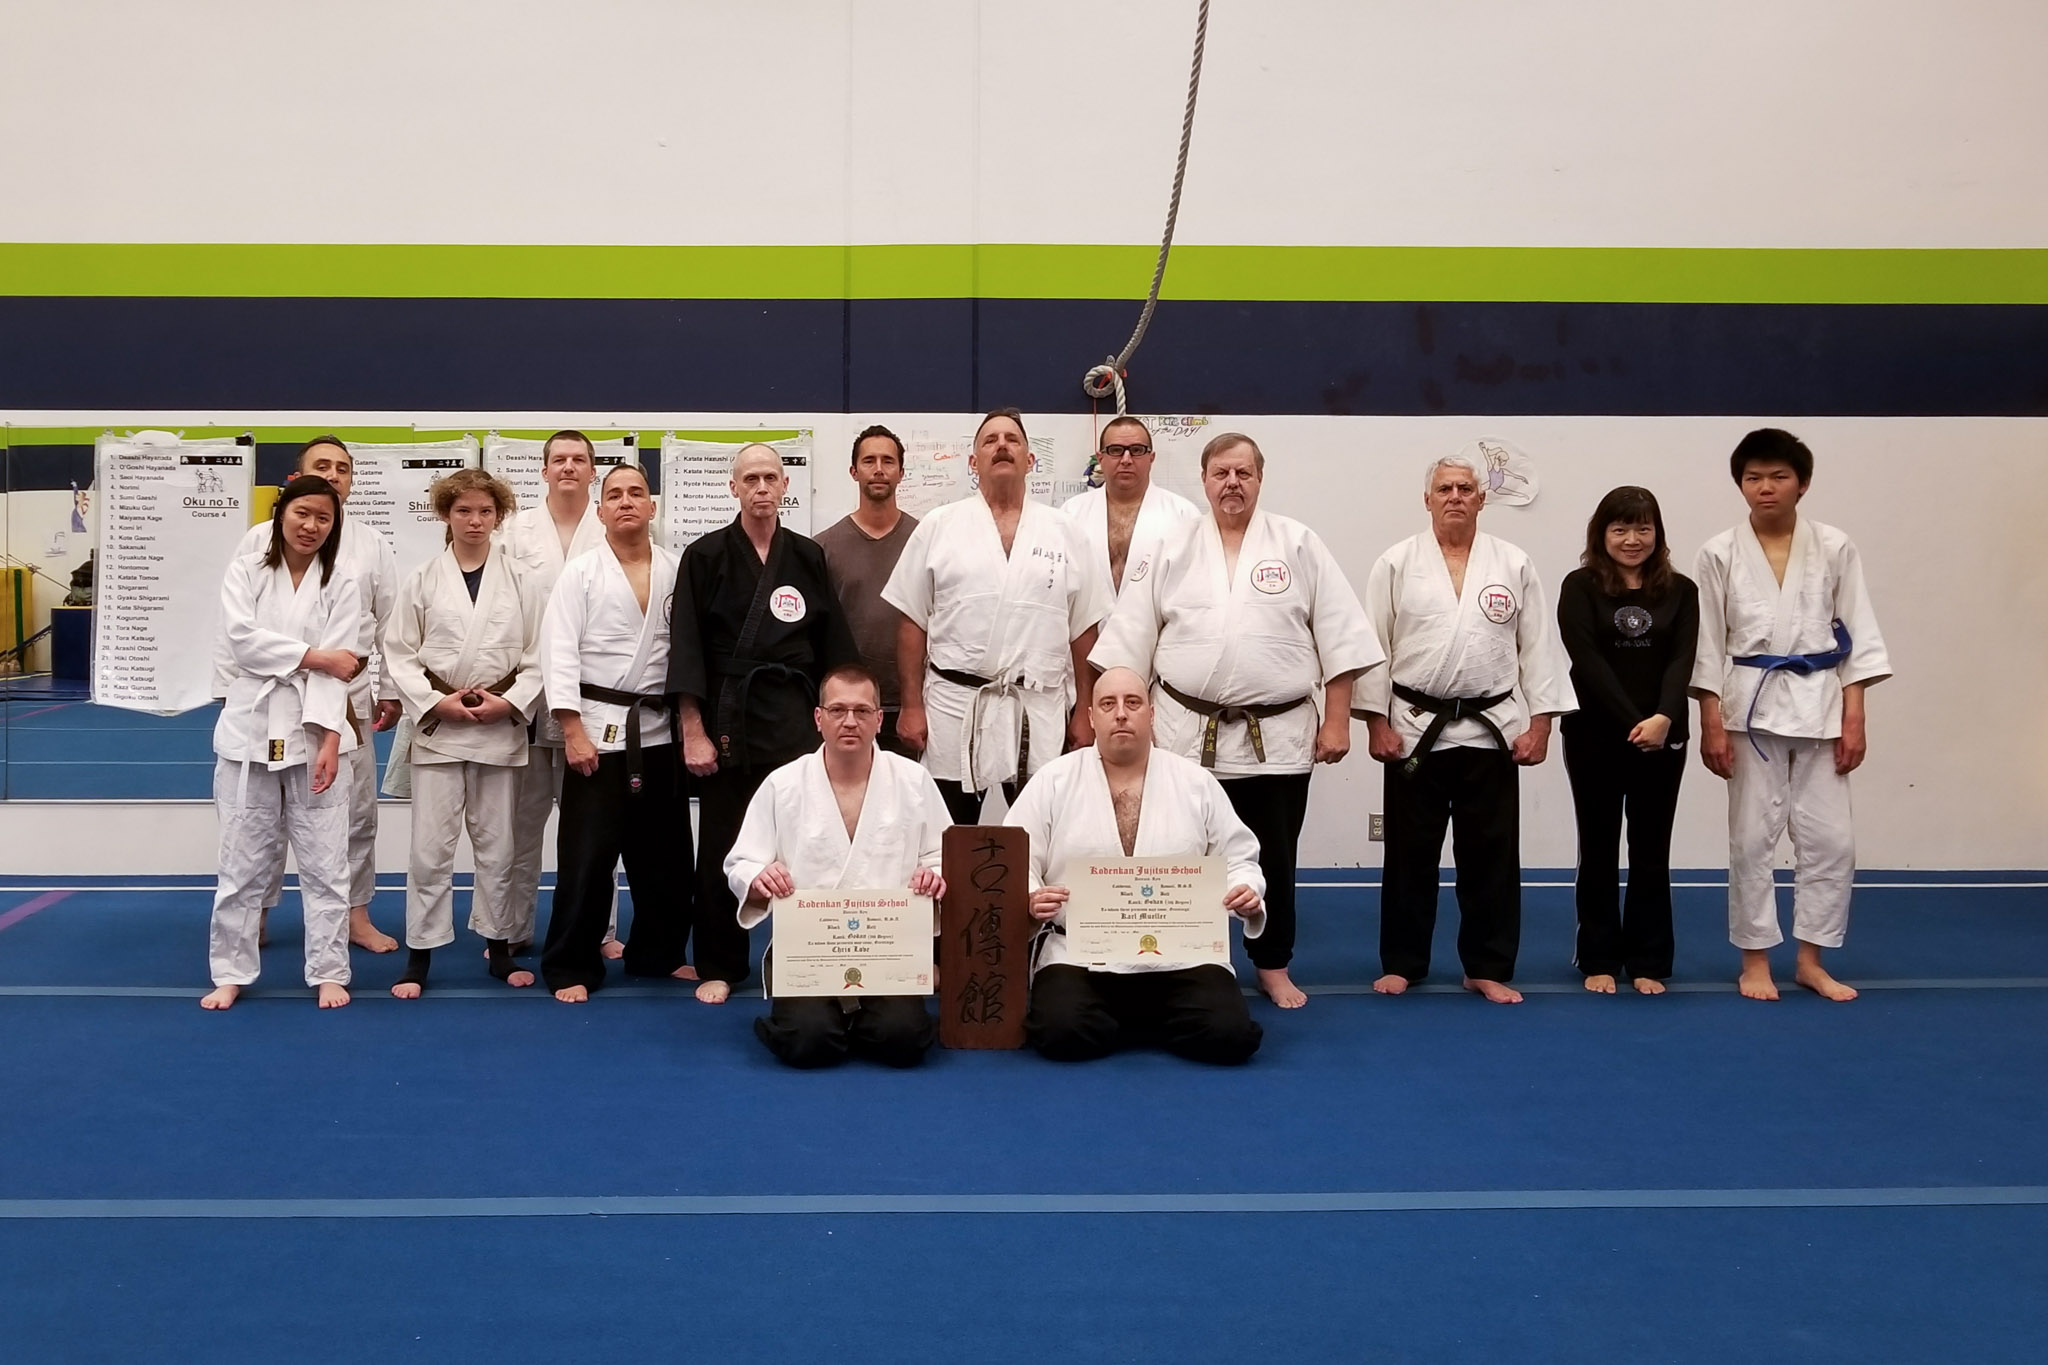 Class Promotions photo, May 10th, 2018.